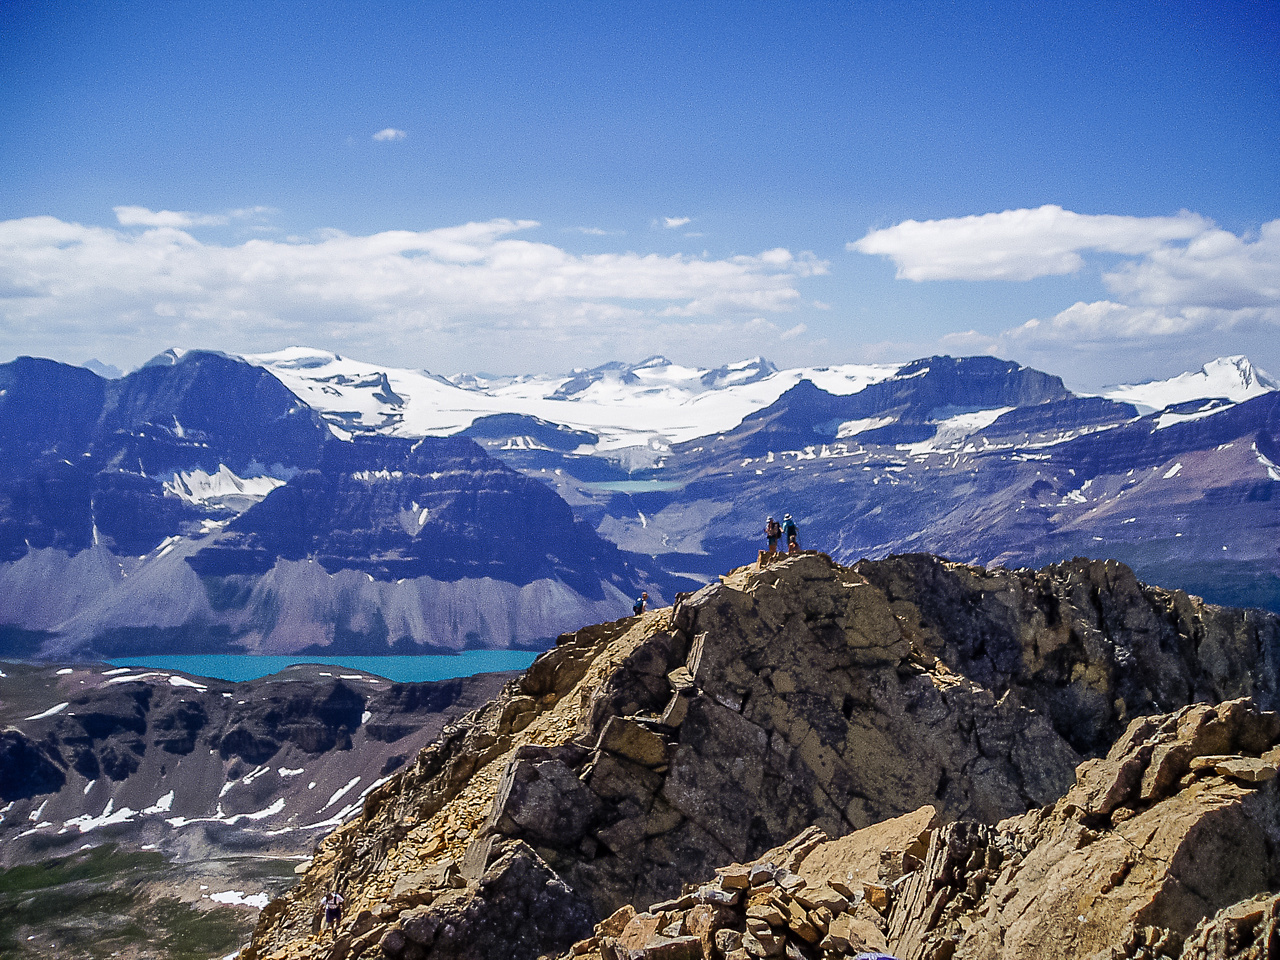 Views over the false summit to Bow Lake and the Wapta Icefield.